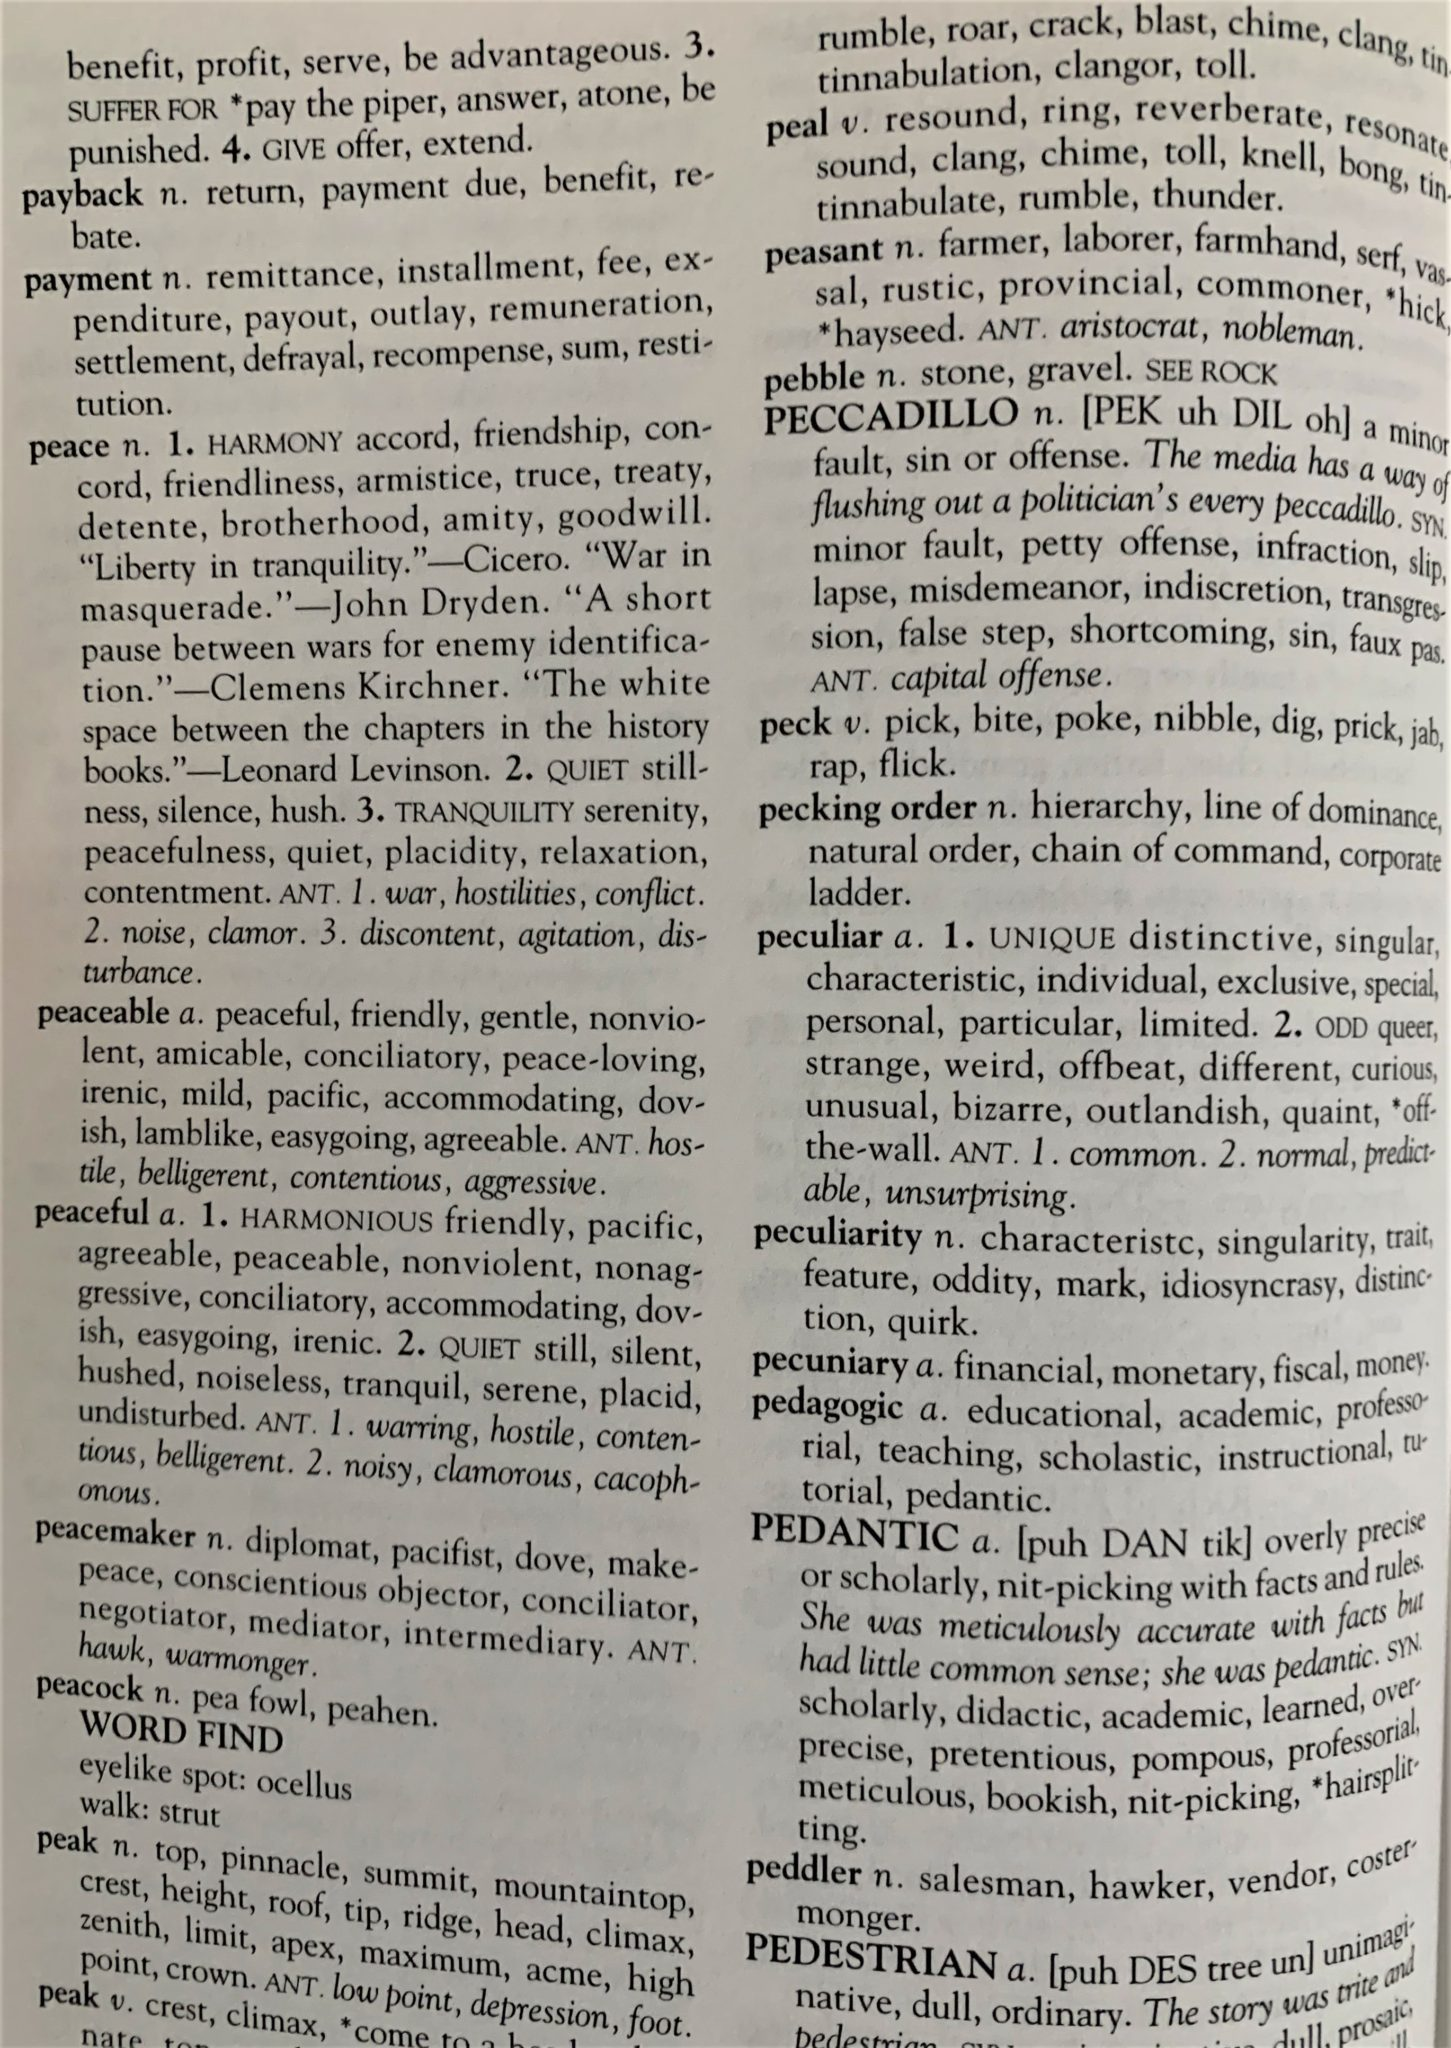 photo of a page of a thesaurus